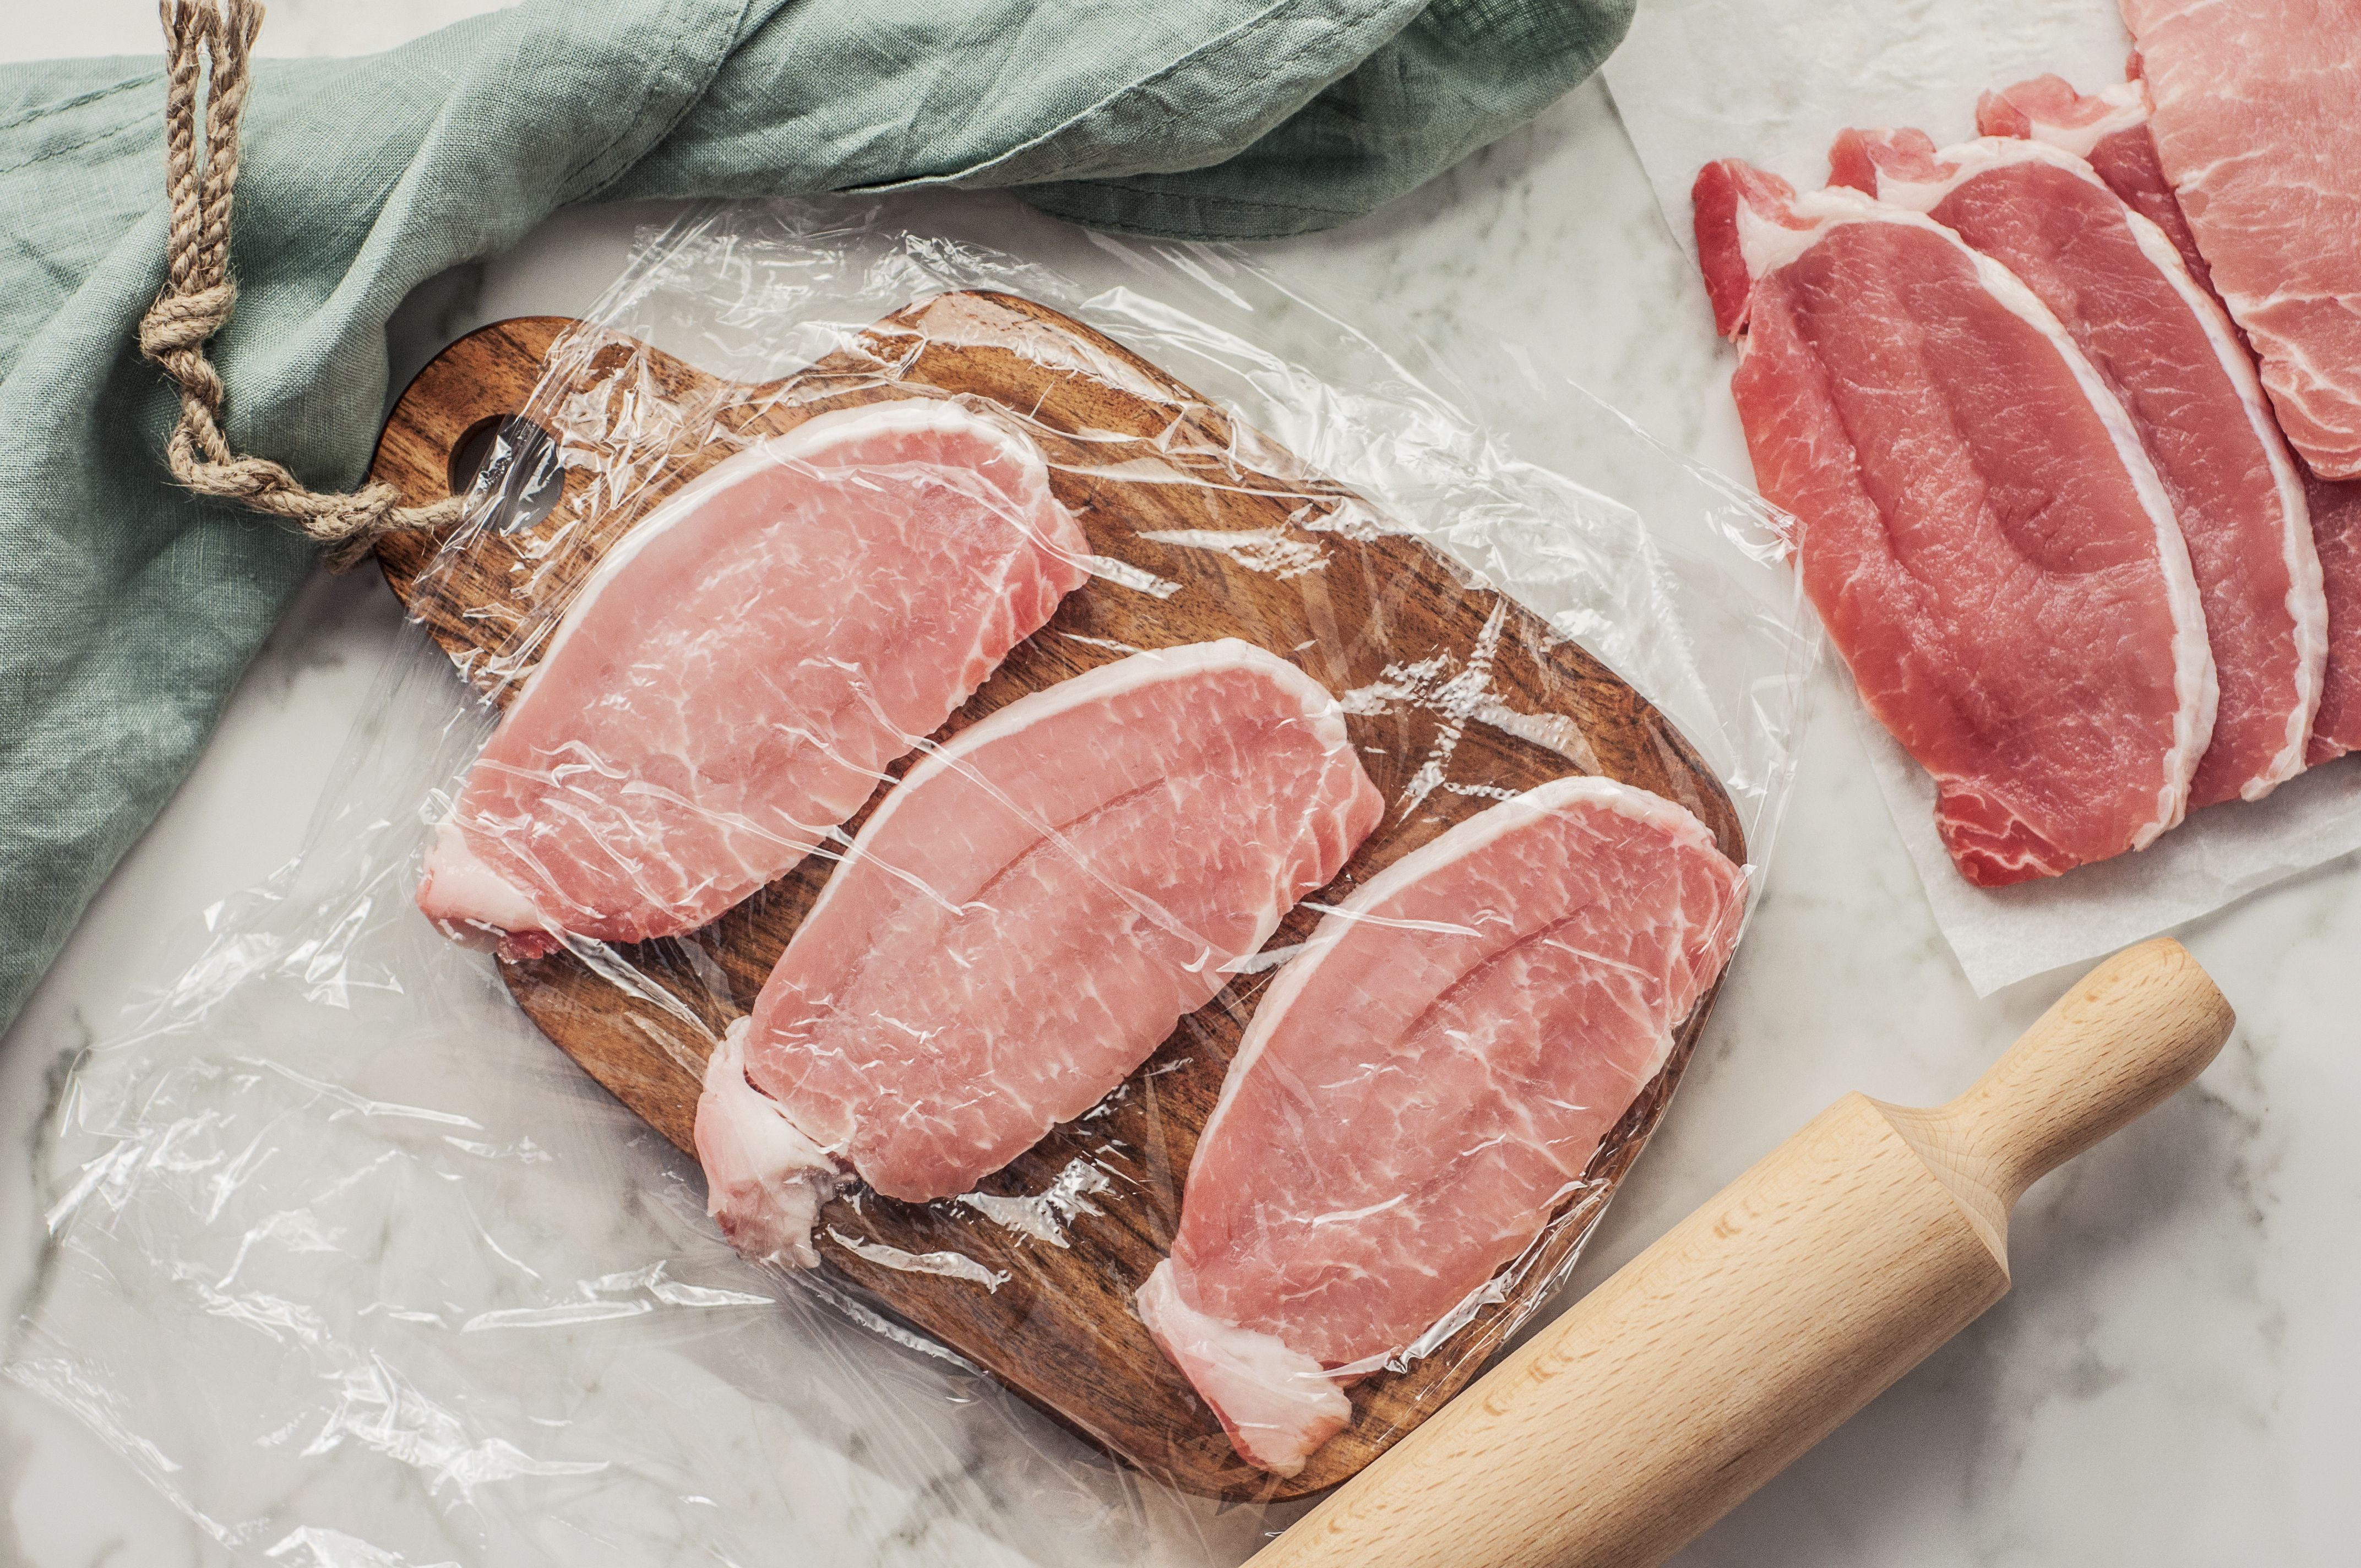 Cutlets wrapped in plastic and rolling pin